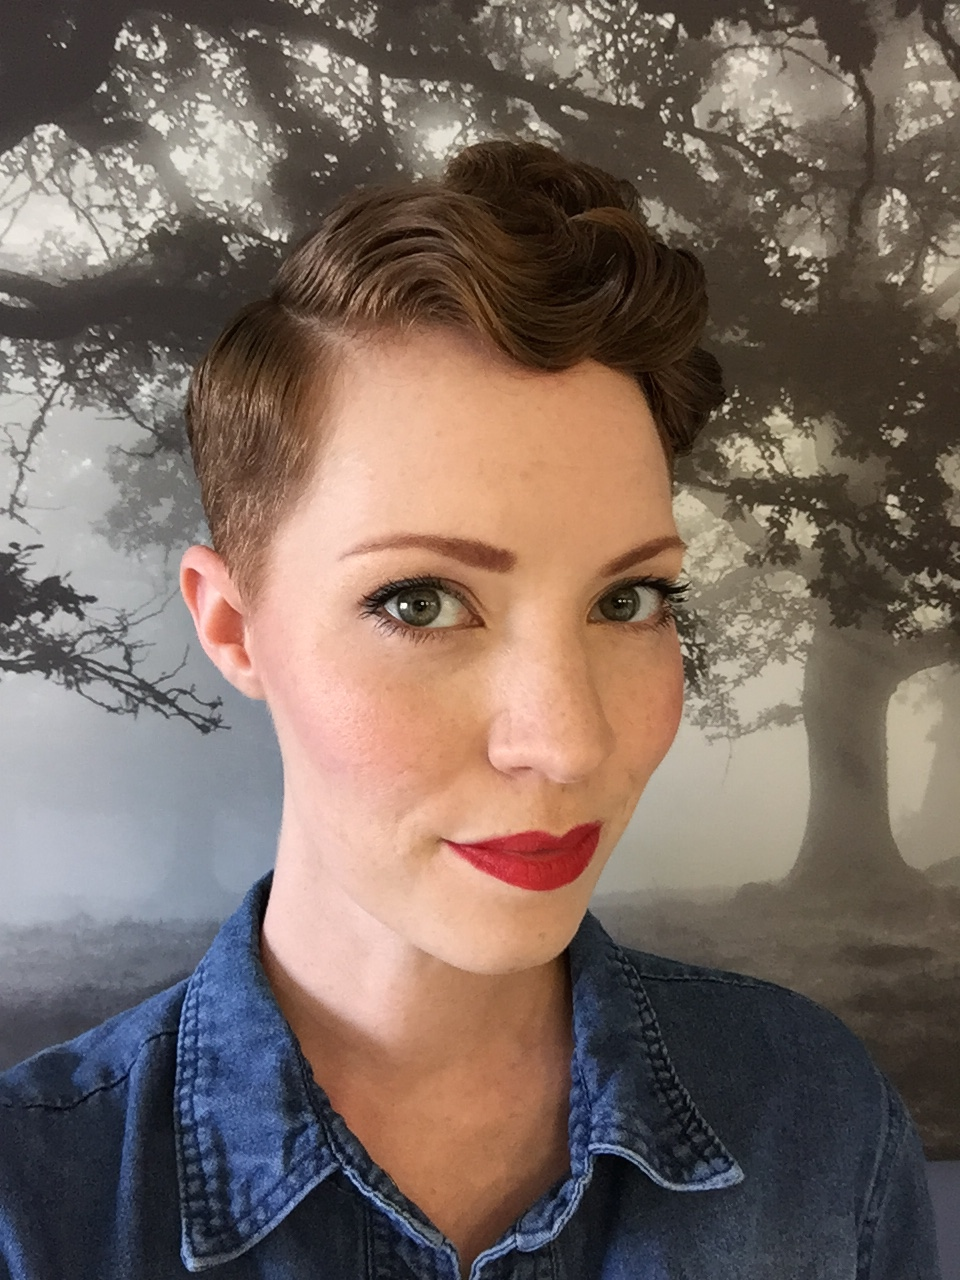 One year post-chemo. Faded pixie cut. Chemo Curls on top.